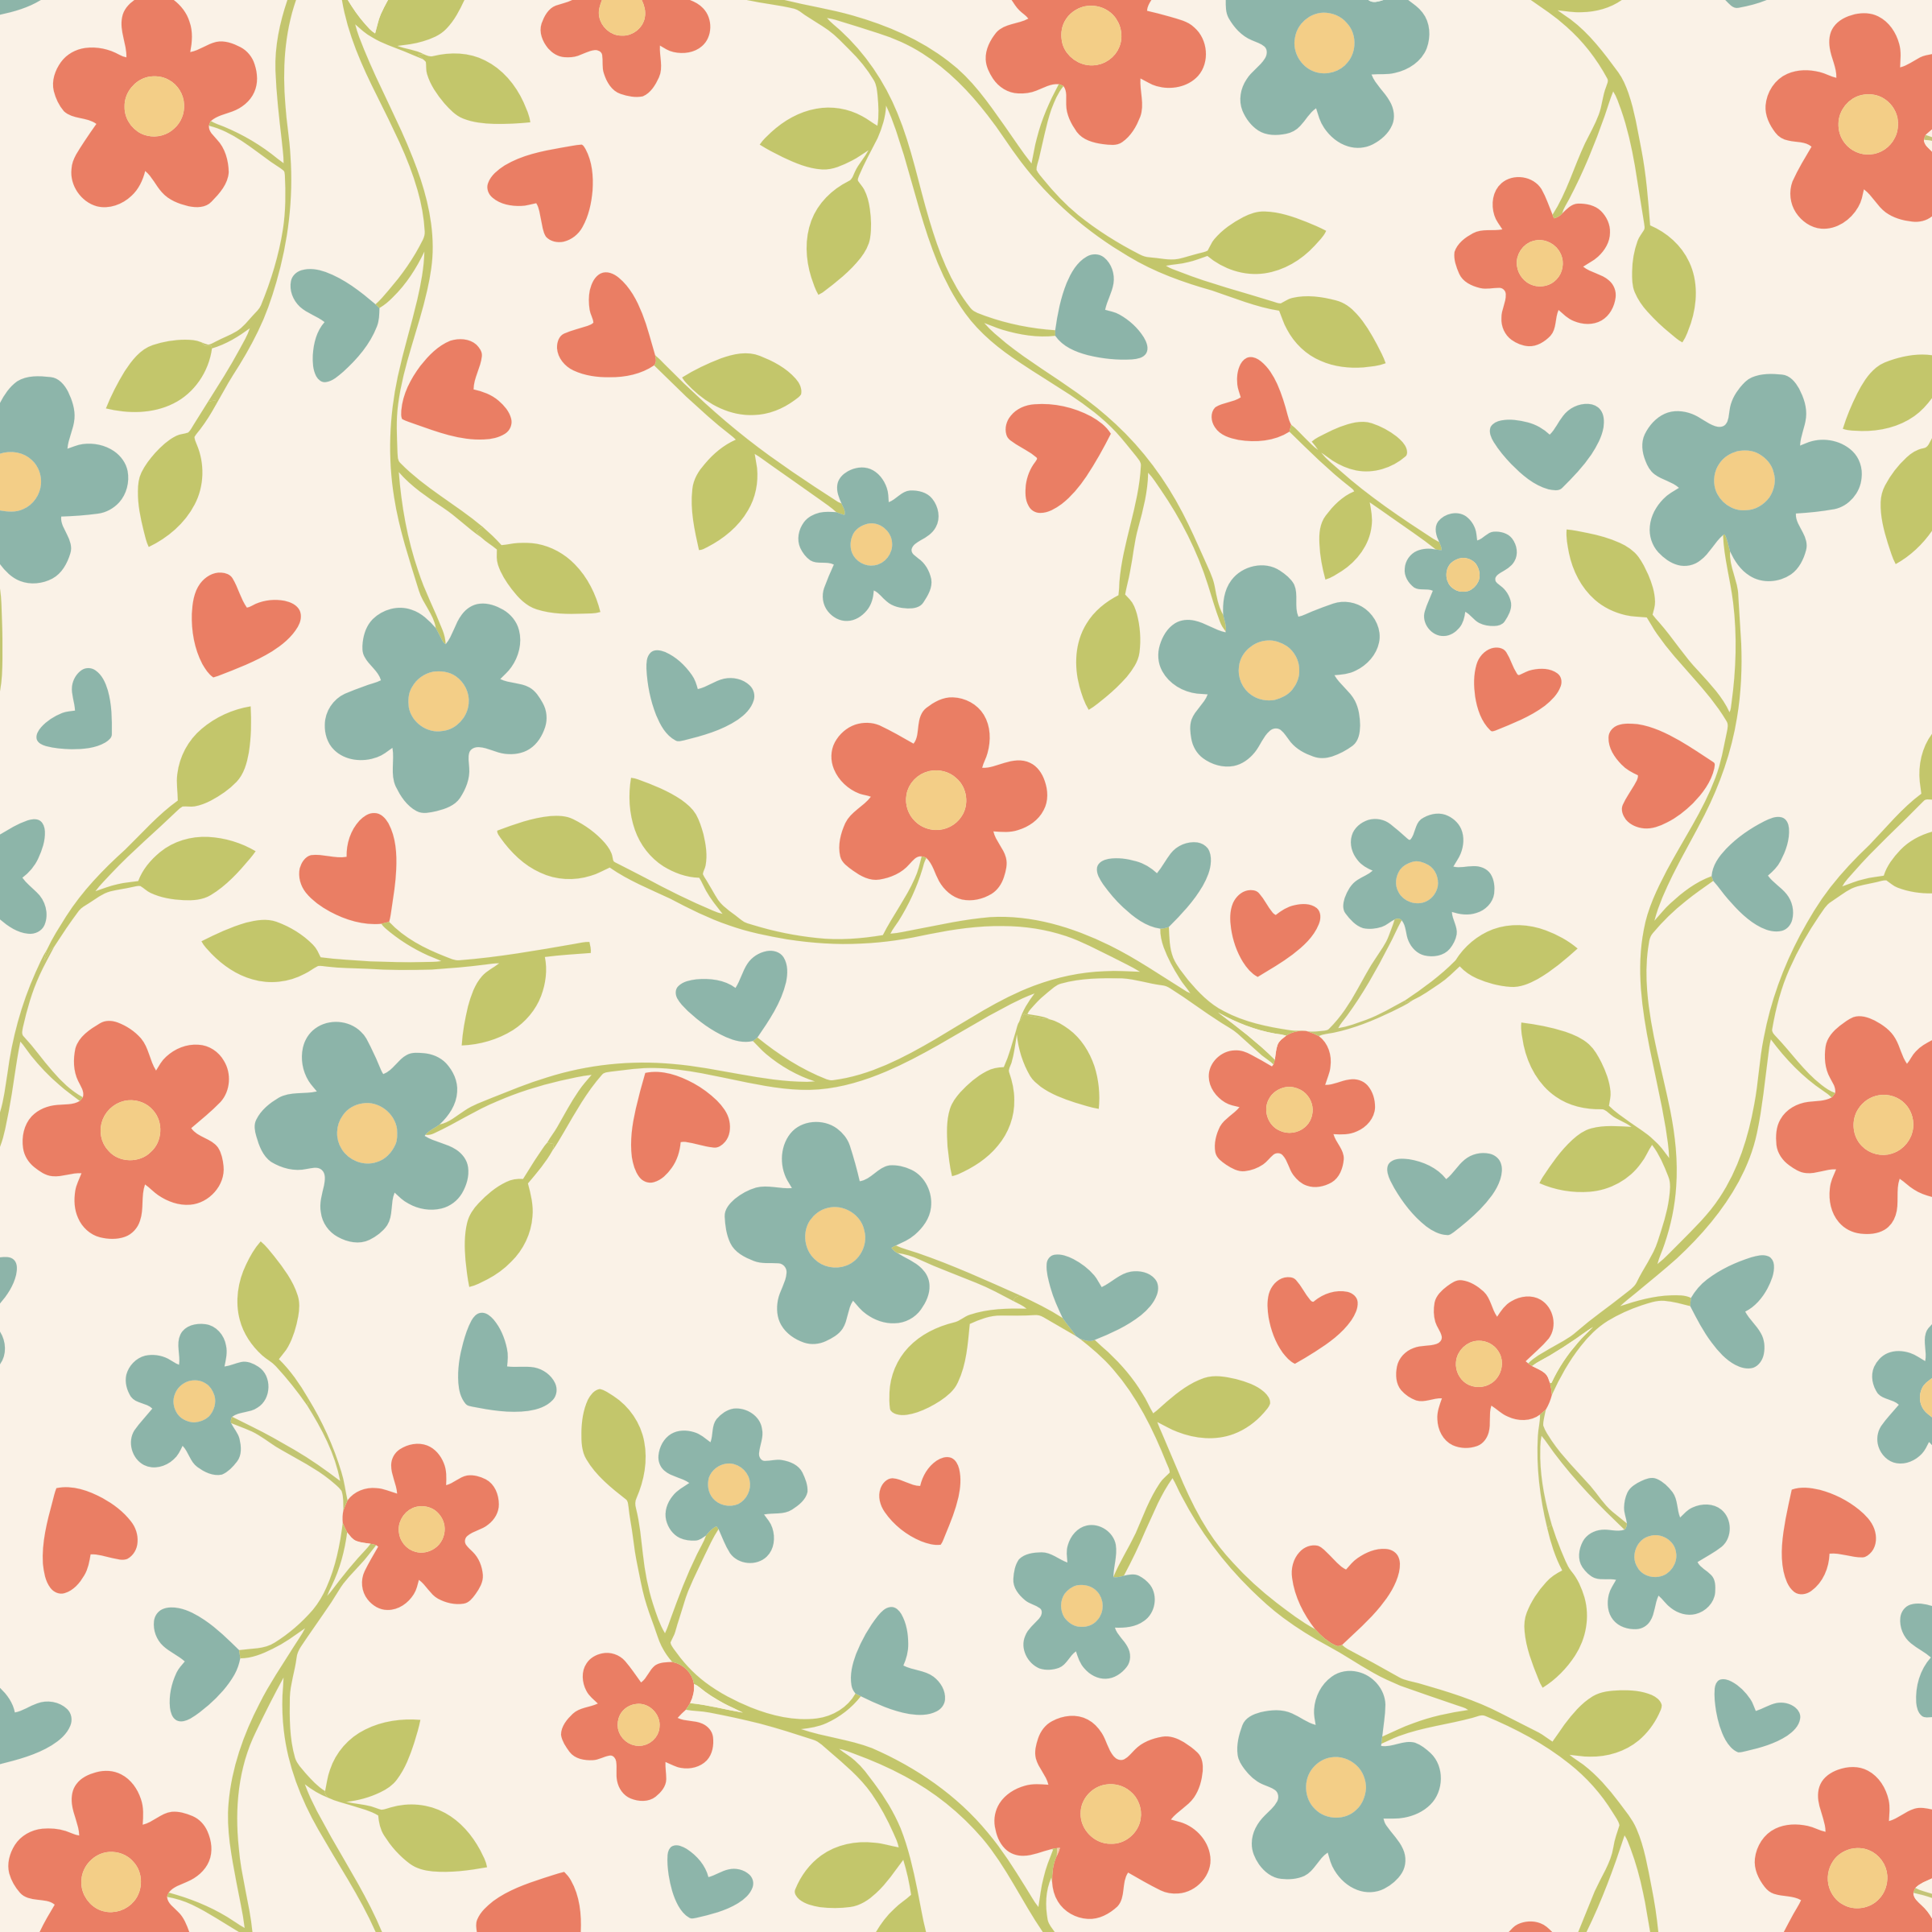 colorful floral background patterns - photo #3